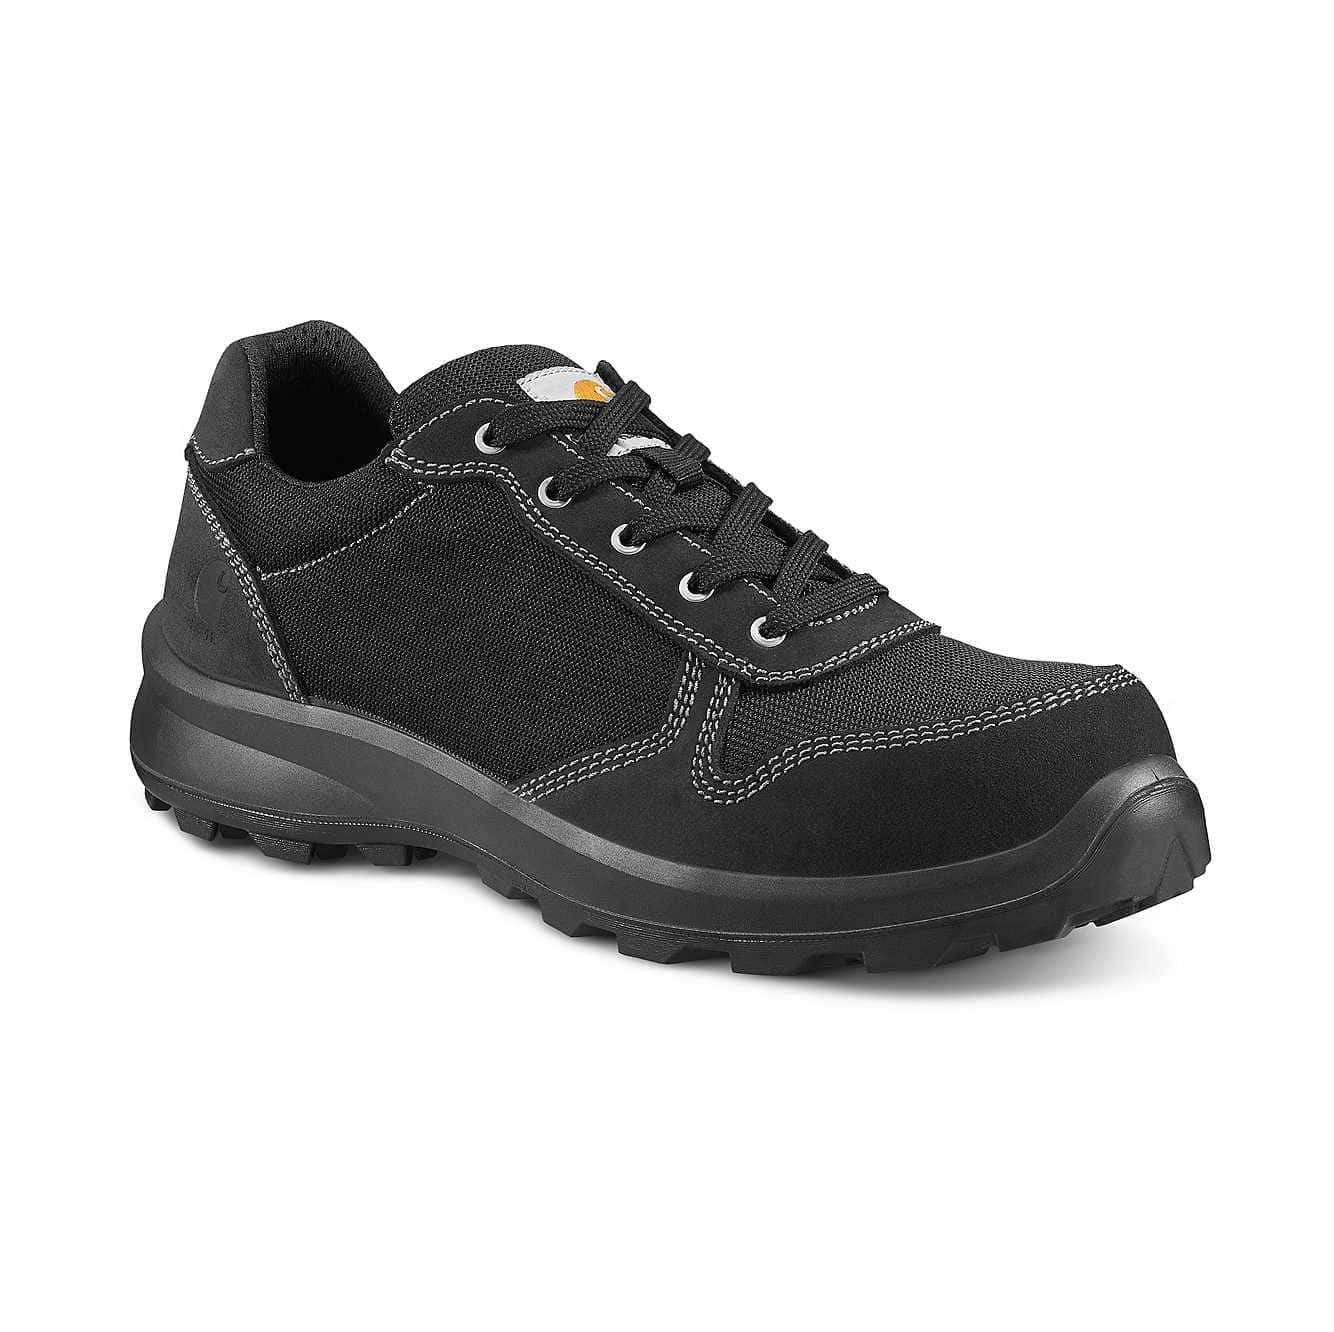 Picture of MICHIGAN RUGGED FLEX® S1P SAFETY SHOE